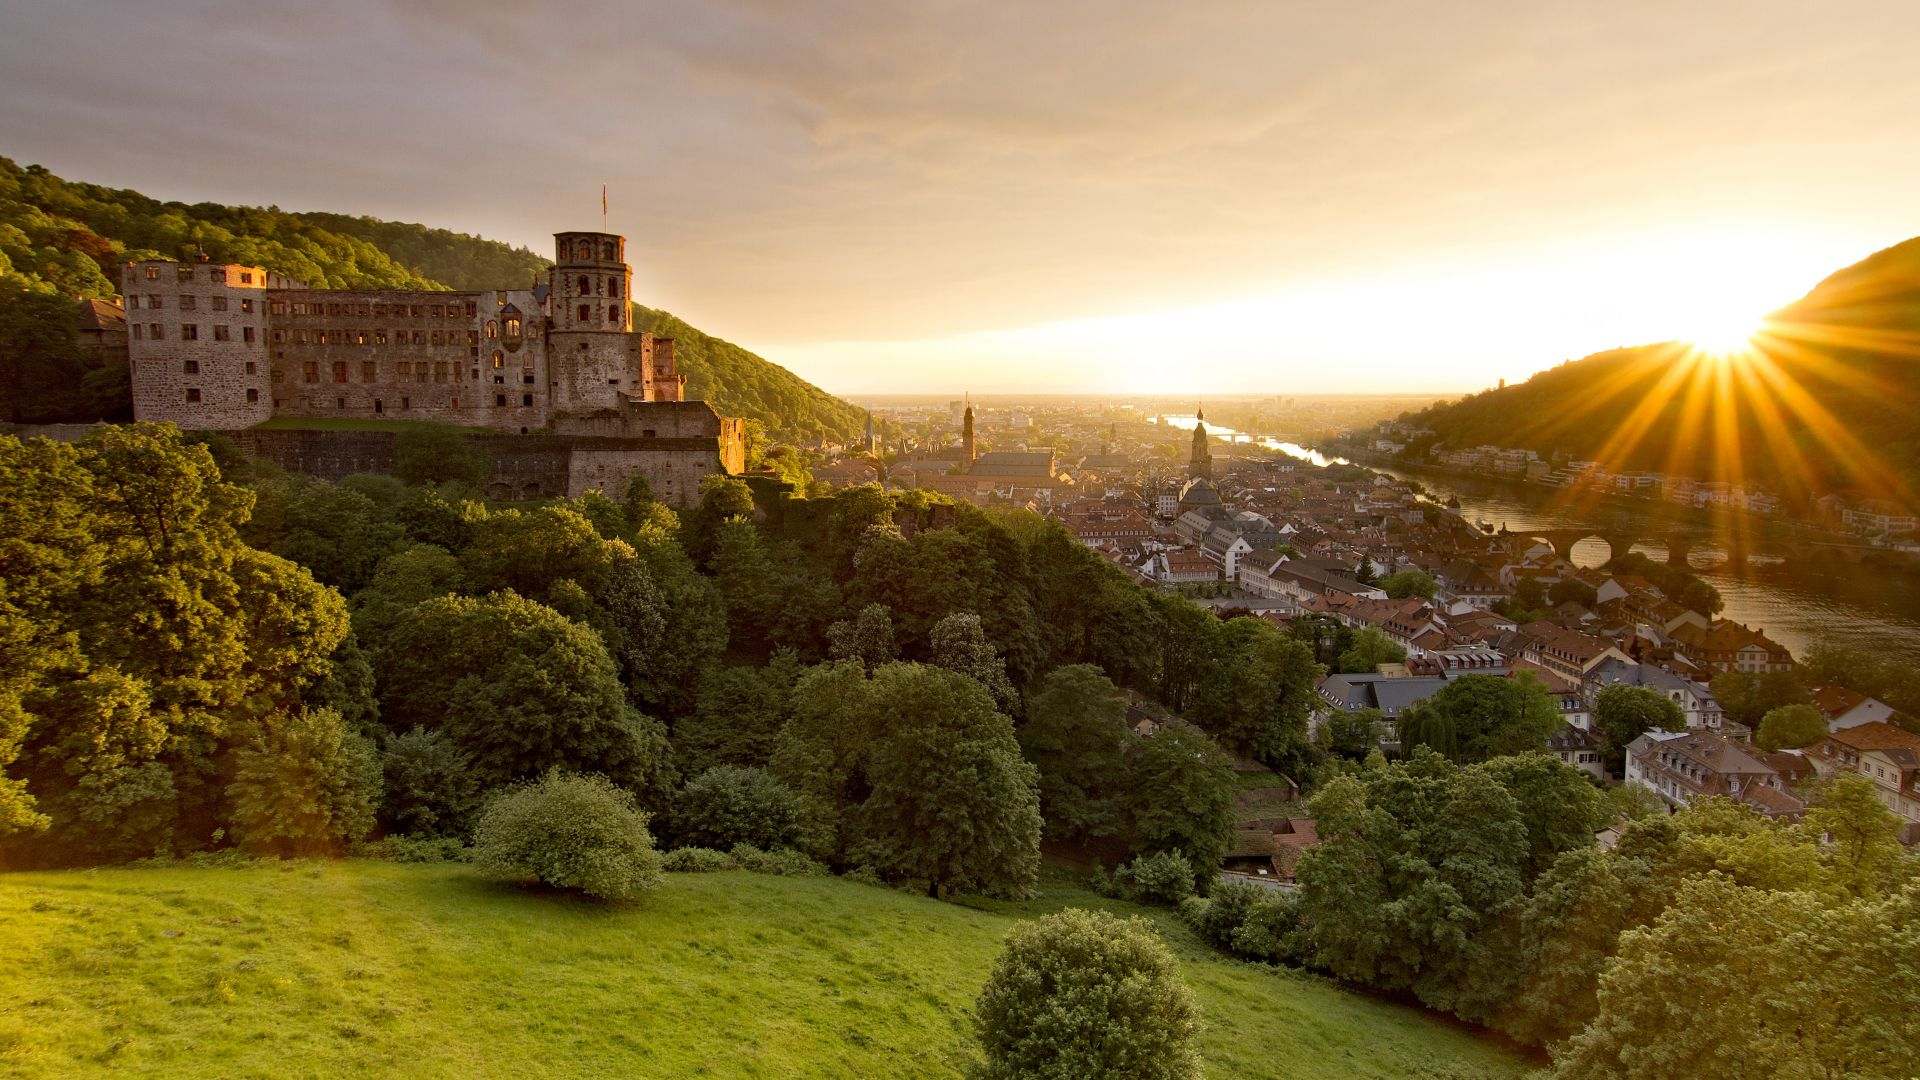 Heidelberg: The castle overlooks the city and the Neckar valley, sunset